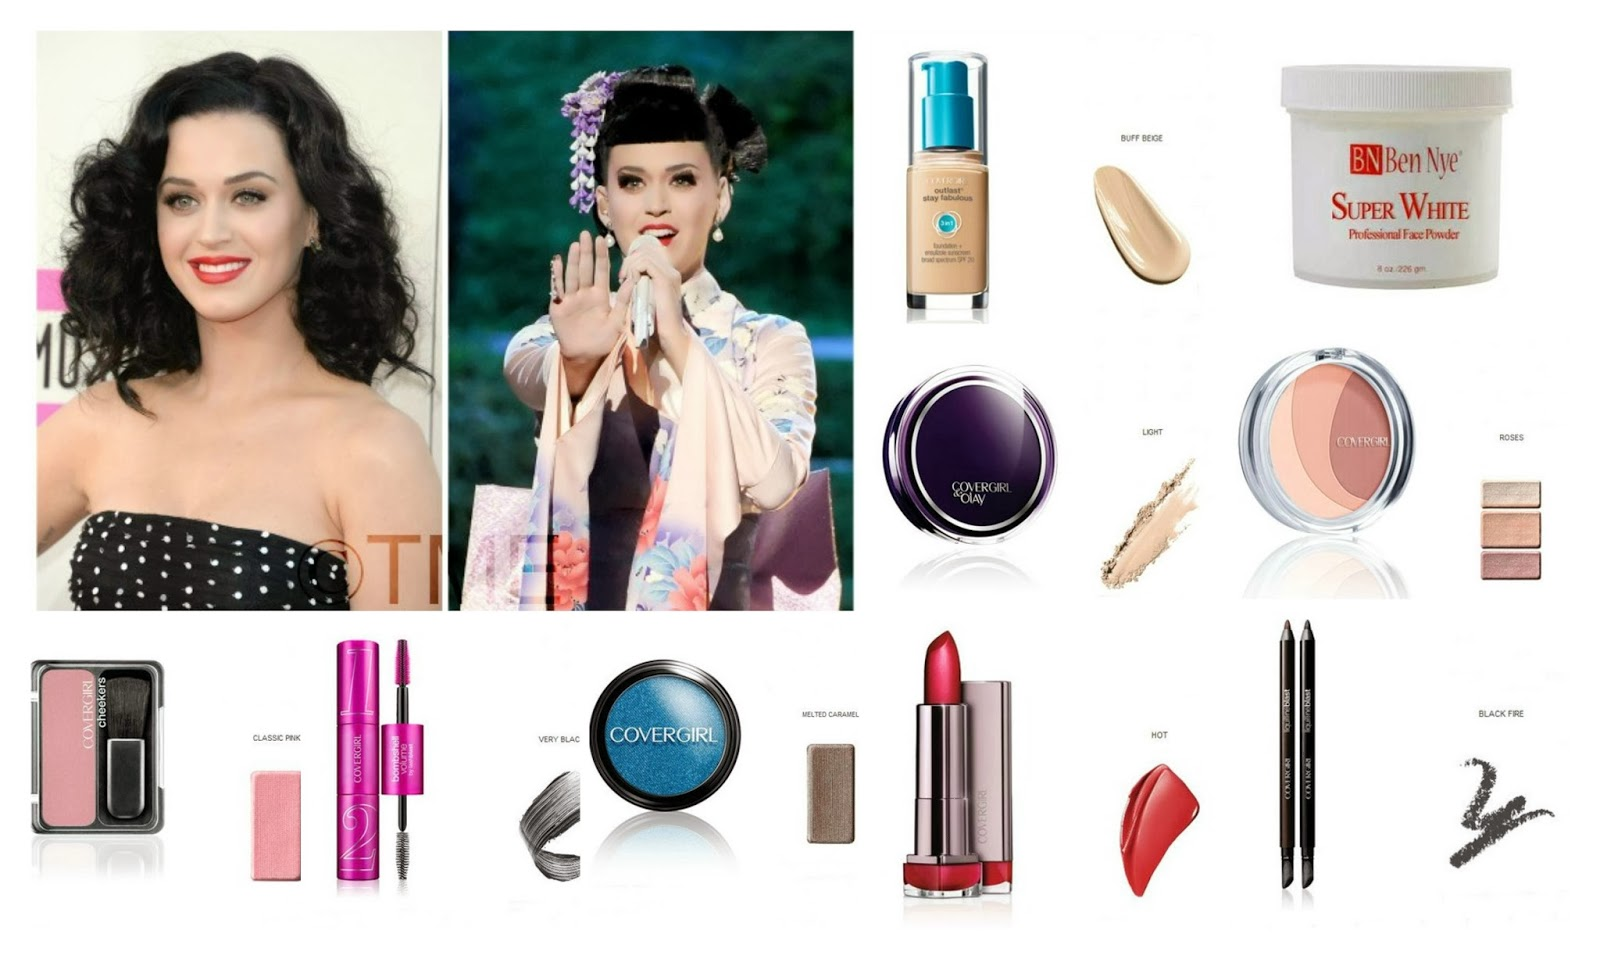 The makeup examiner november 2013 katy perrys performance look for katys performance we created a look inspired by her recent trip to japan this was a dramatic look and we only had a nvjuhfo Images